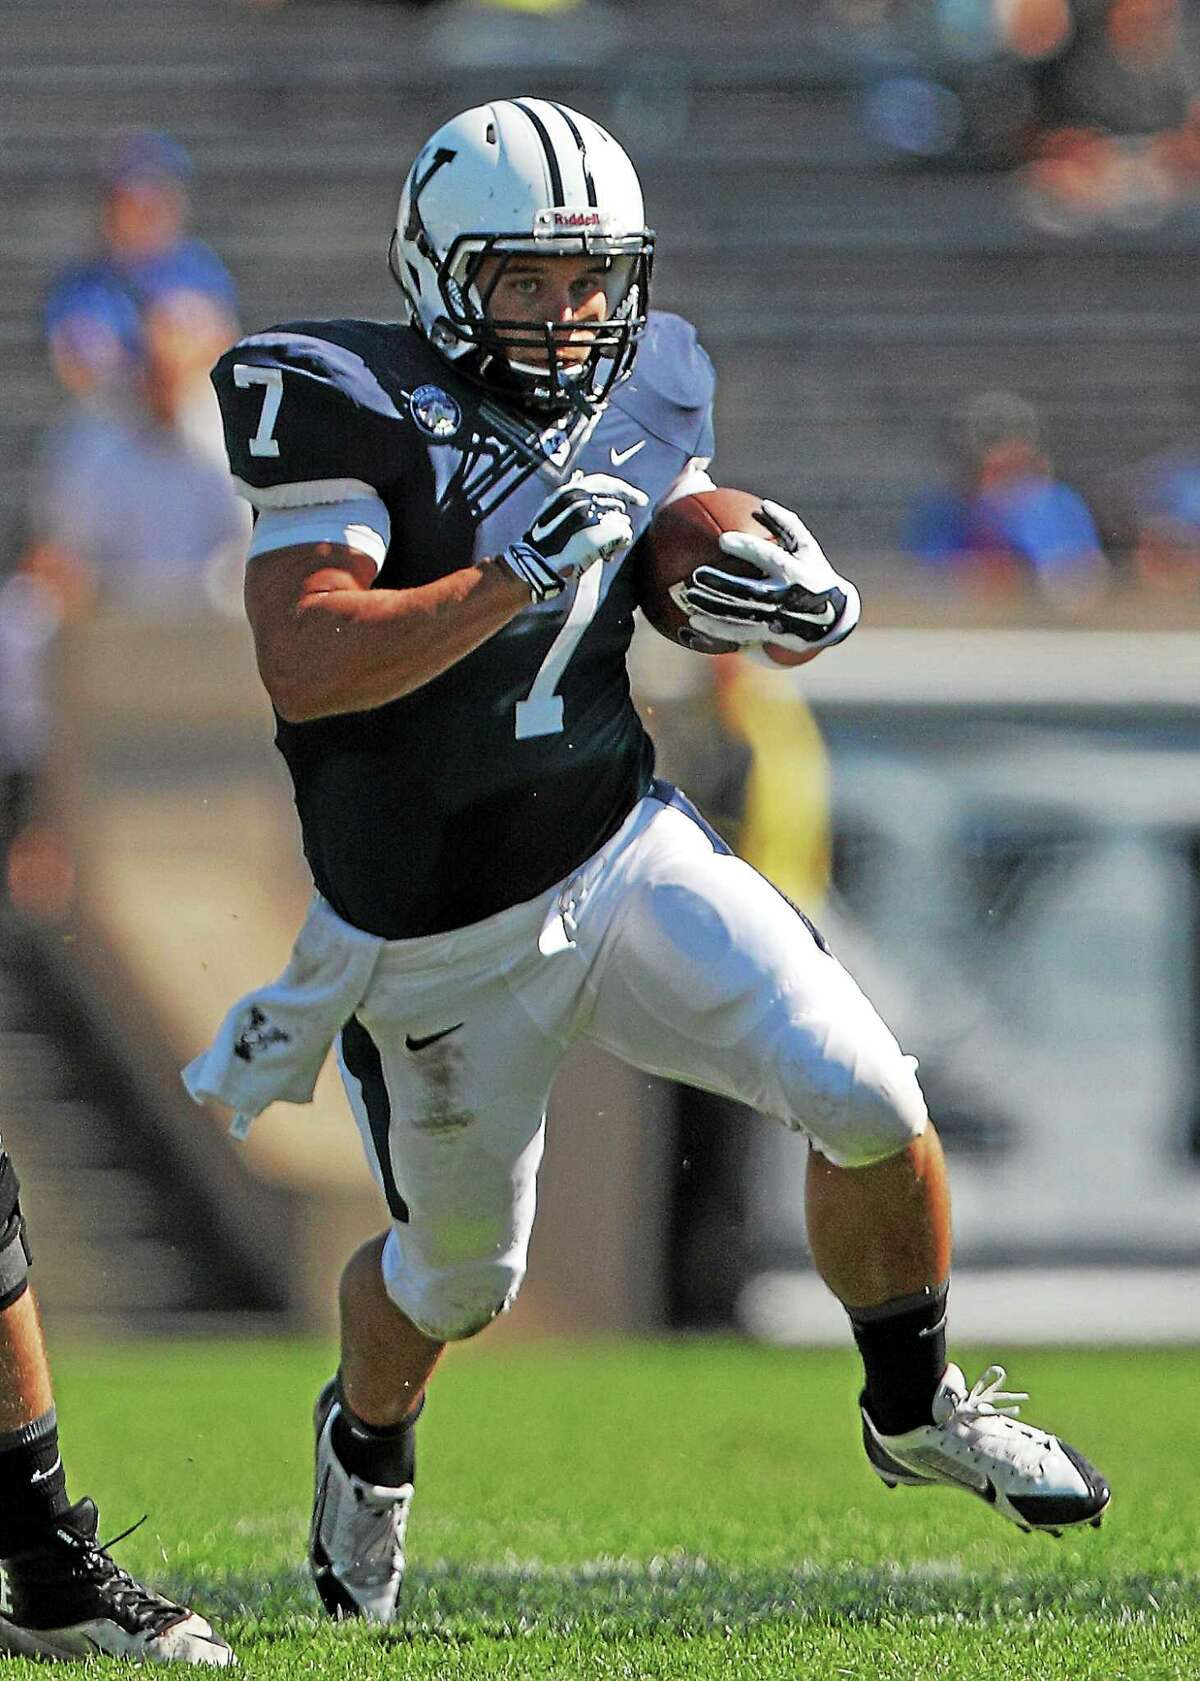 Yale running back Candler Rich is the most experienced of the returning Bulldog backs.